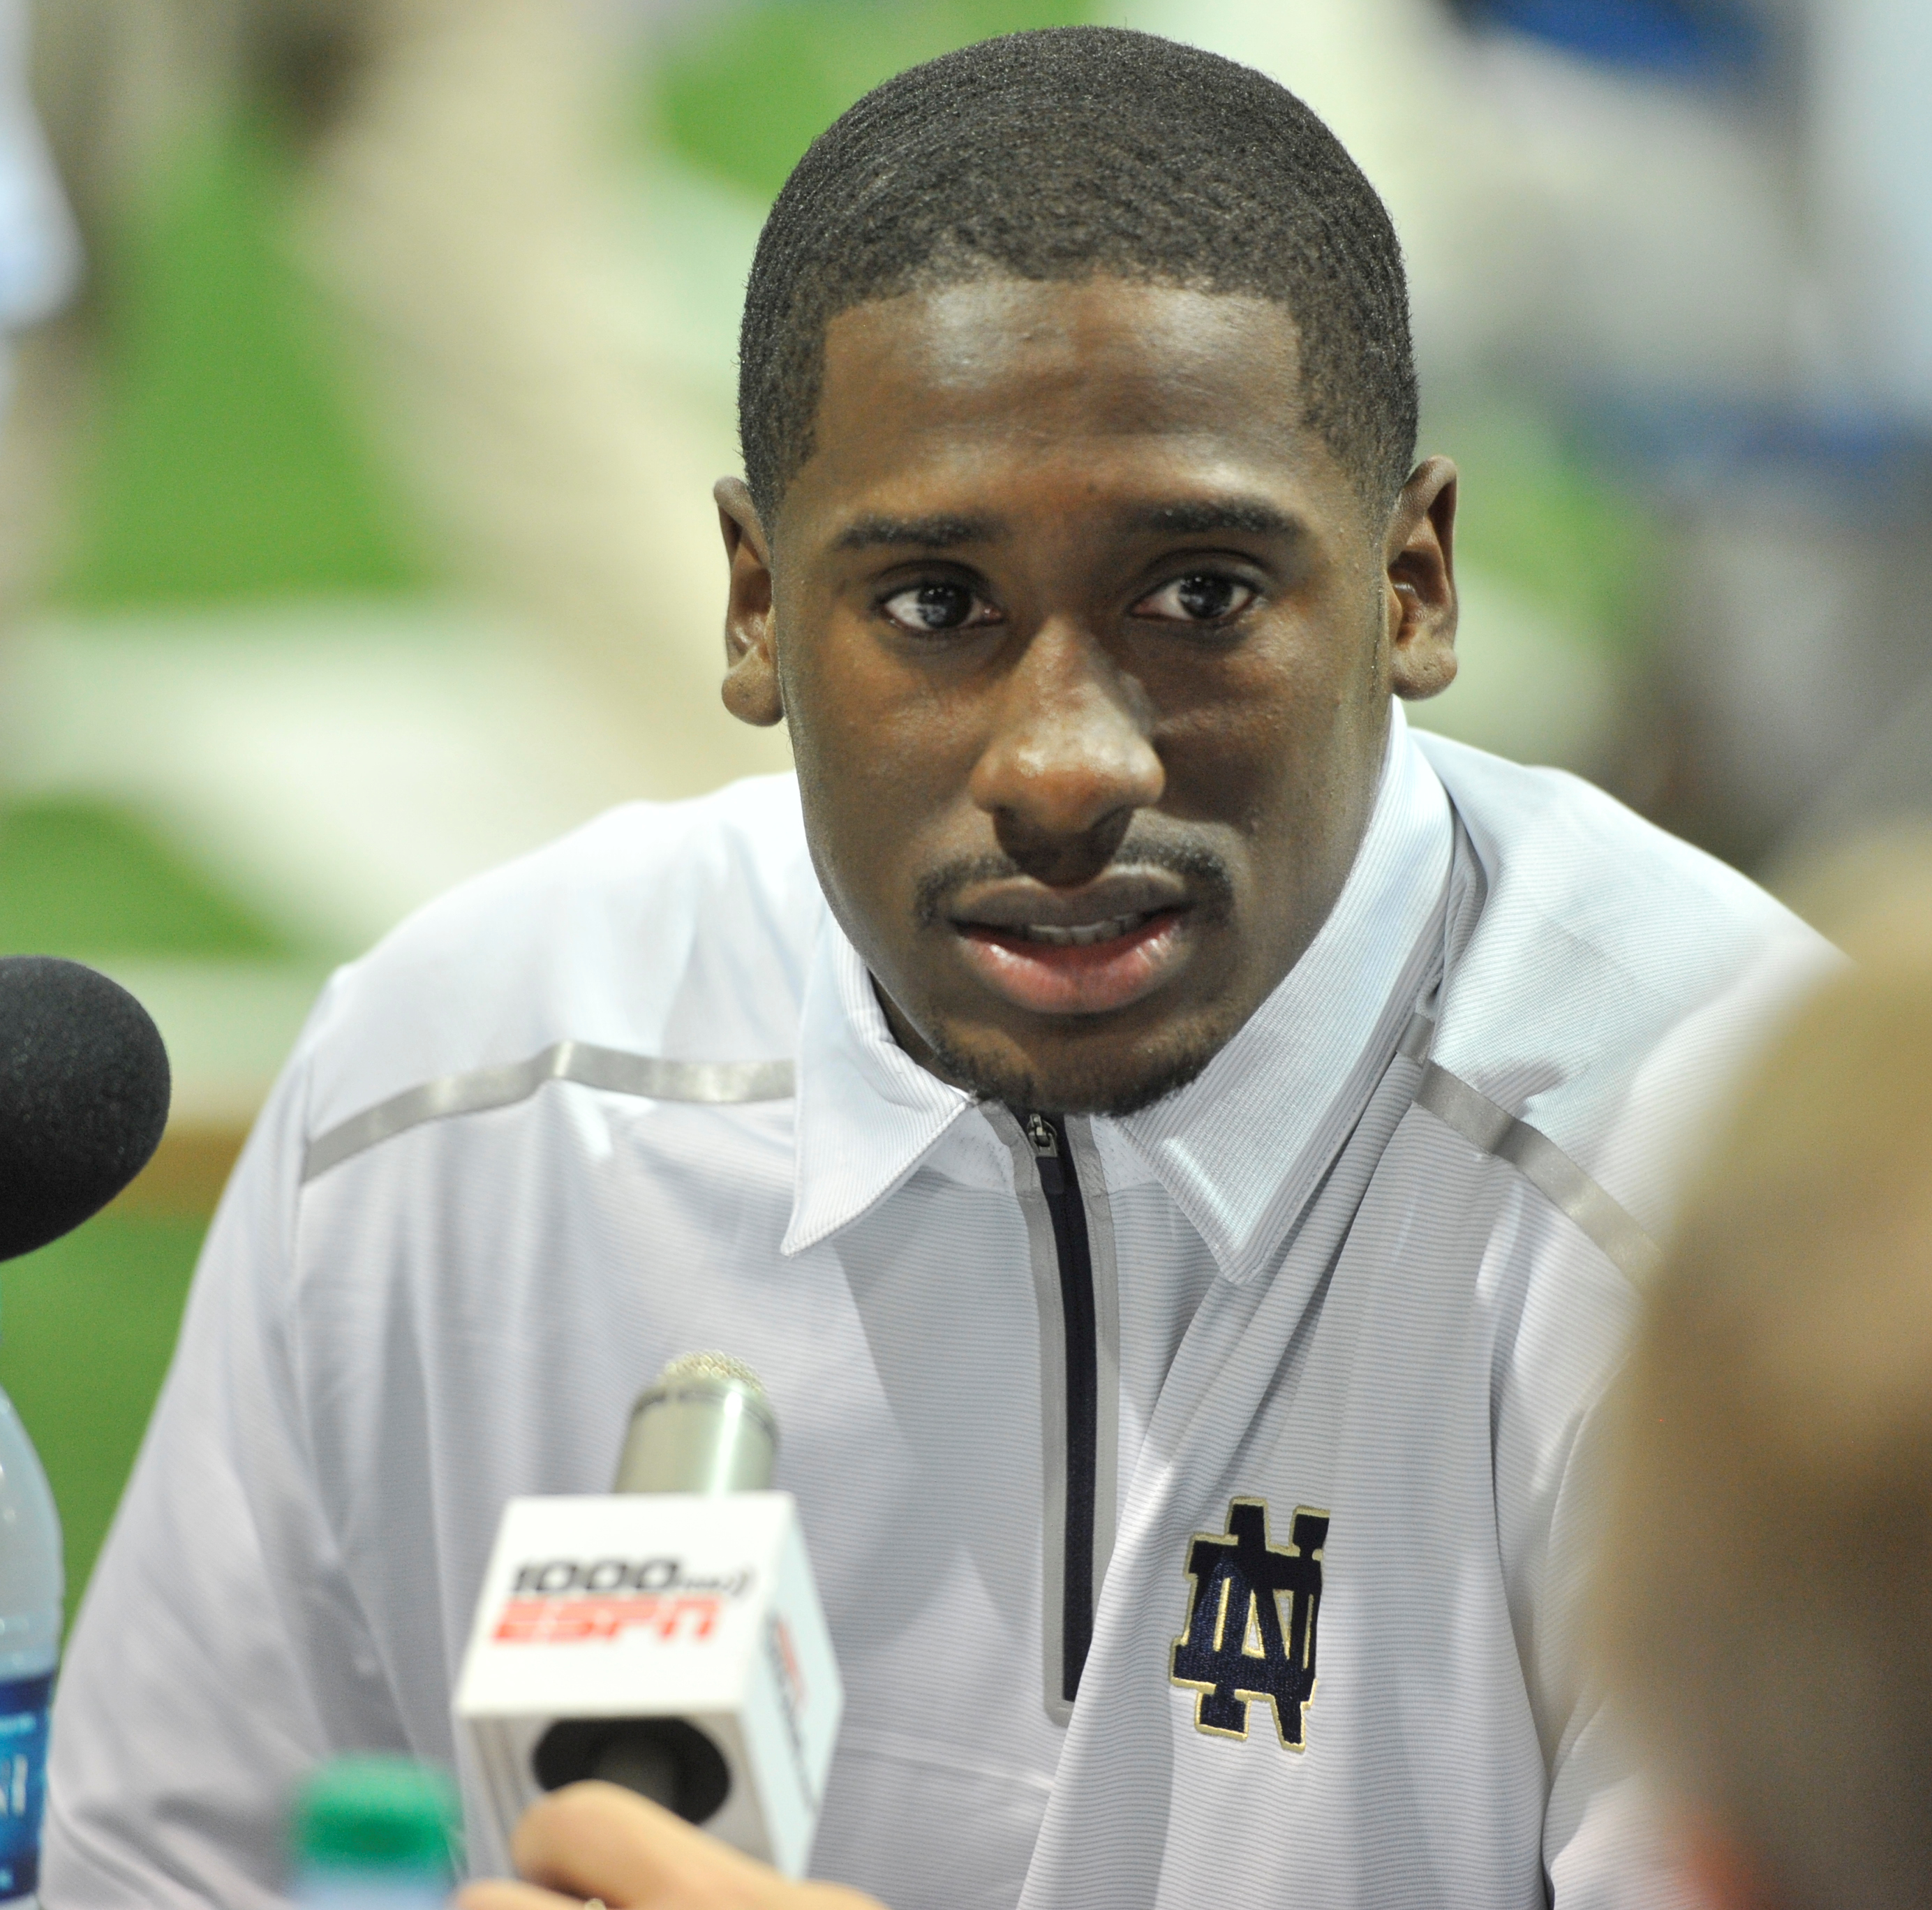 FILE - In this Aug. 19, 2014, file photo, Notre Dame quarterback Everett Golson answers a question during media day for the NCAA college football team in South Bend, Ind. Golson has announced he is leaving Notre Dame and will use his final season of eligi